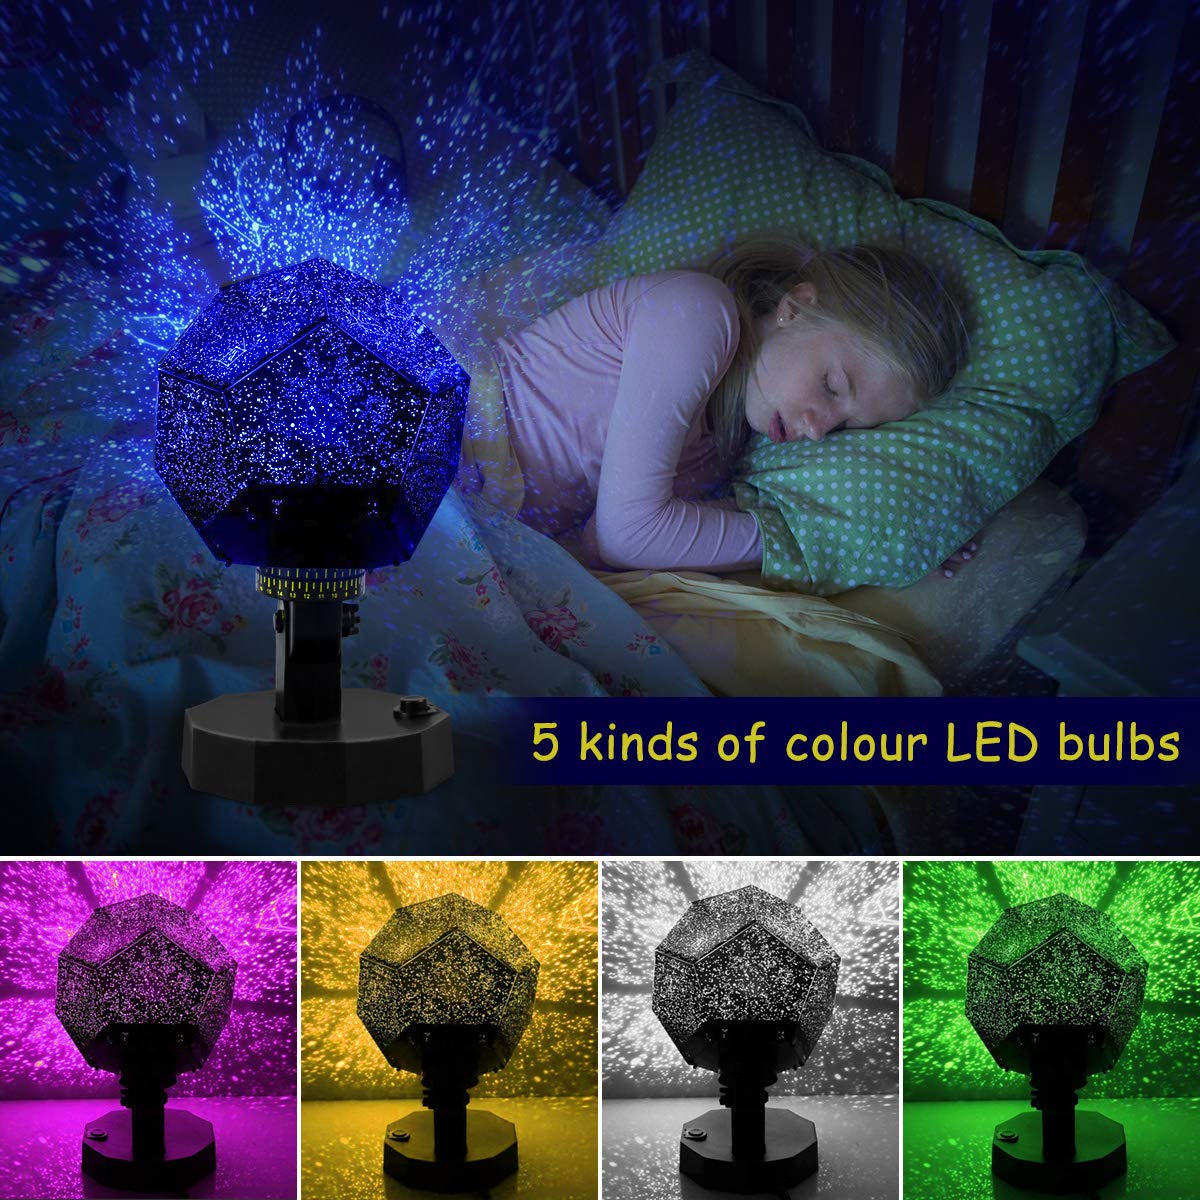 Lisnec Diy Night Light Baby Star Projector Multicolor Changing How To Build Hd Led Details Use